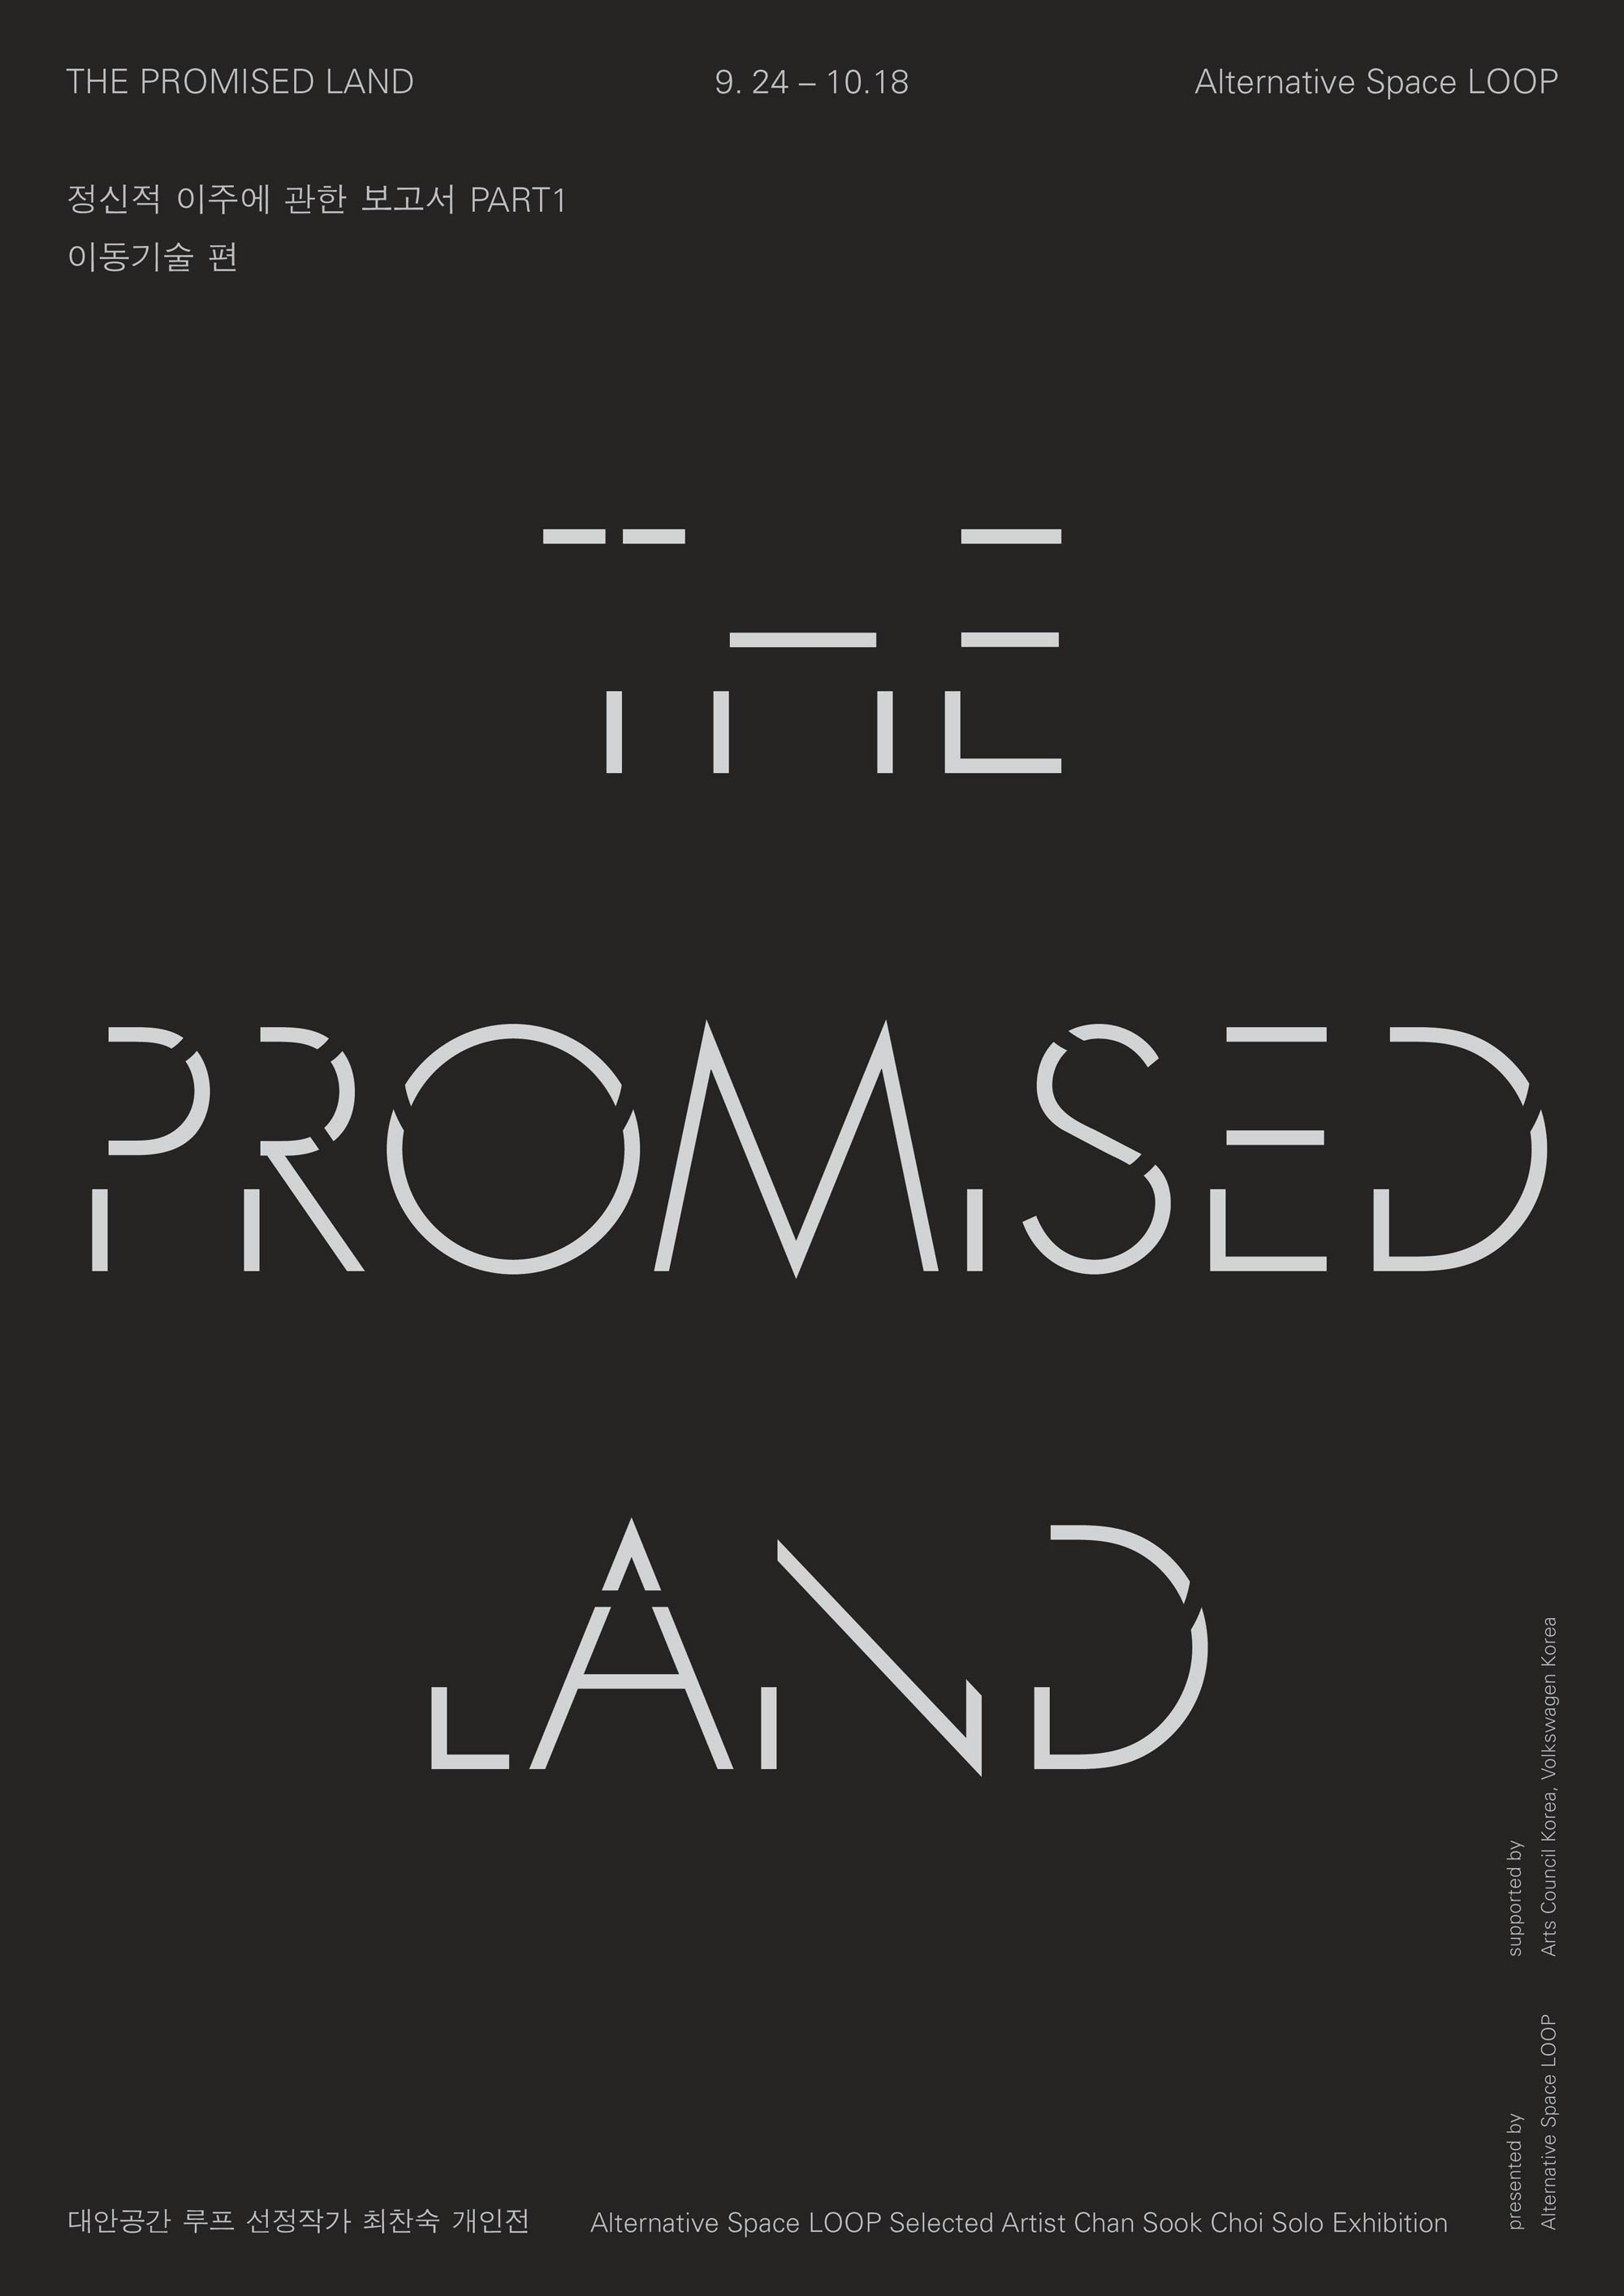 Chan Sook Choi Solo Exhibition: THE PROMISED LAND